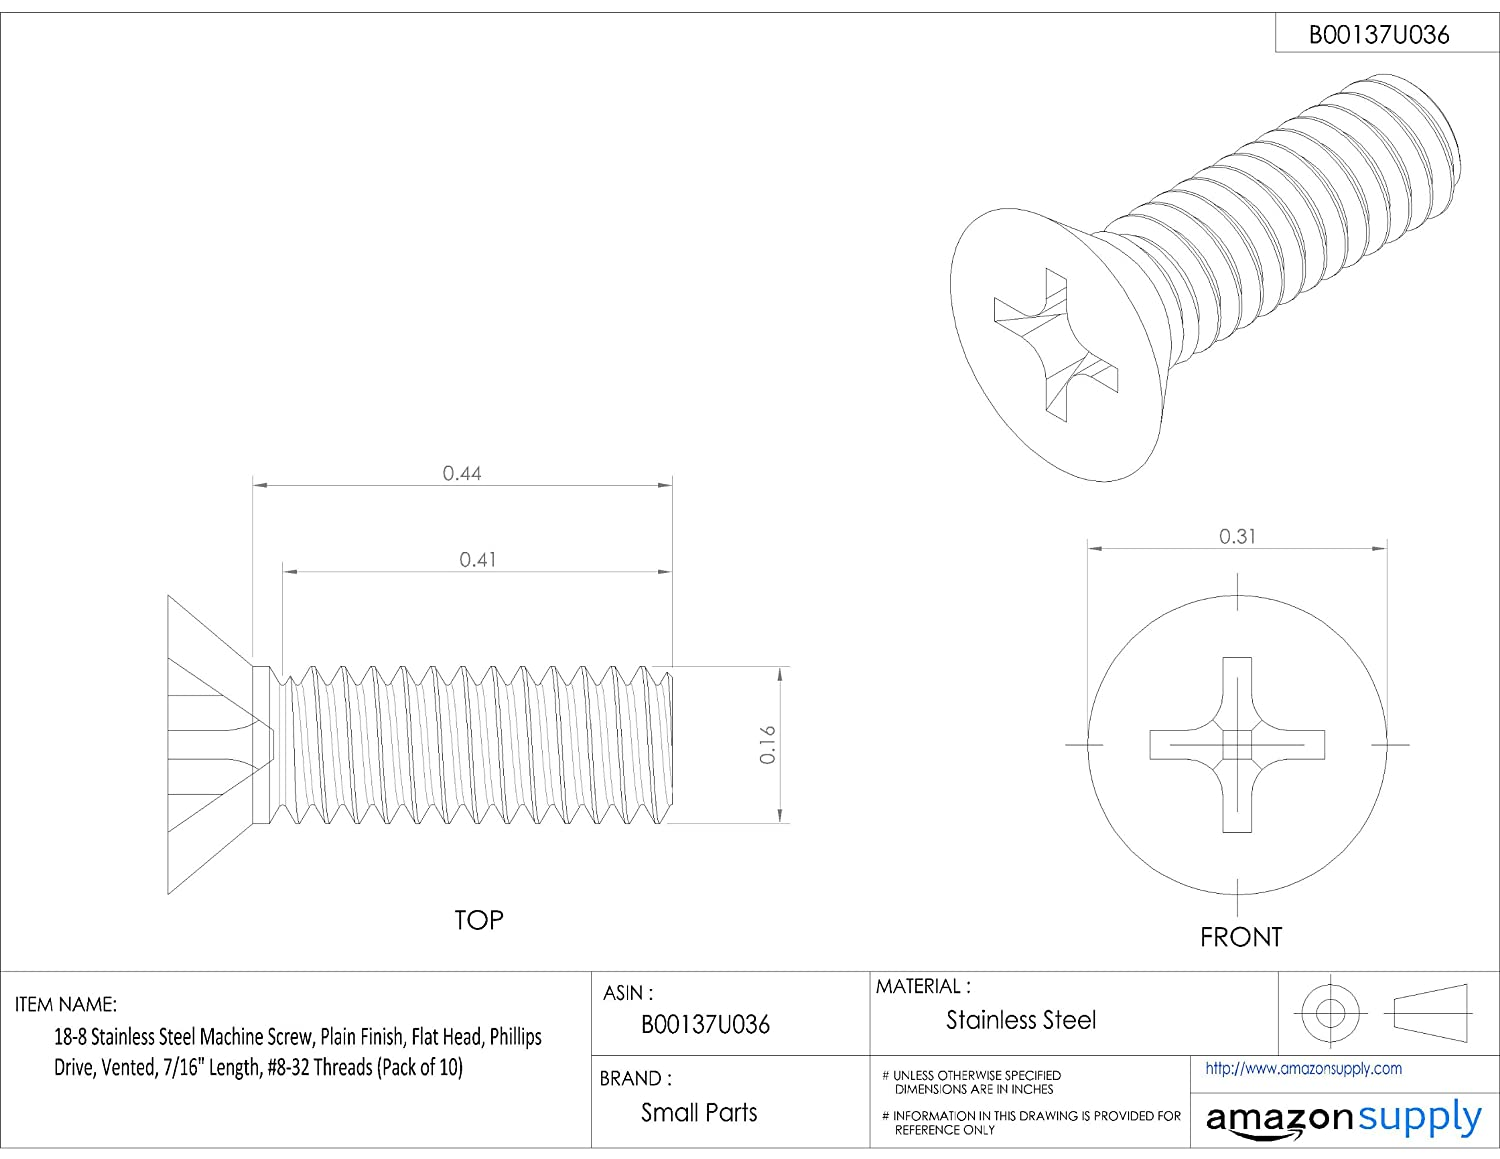 Pack of 10 #8-32 Threads Flat Head 7//16 Length Phillips Drive Plain Finish 18-8 Stainless Steel Machine Screw Vented